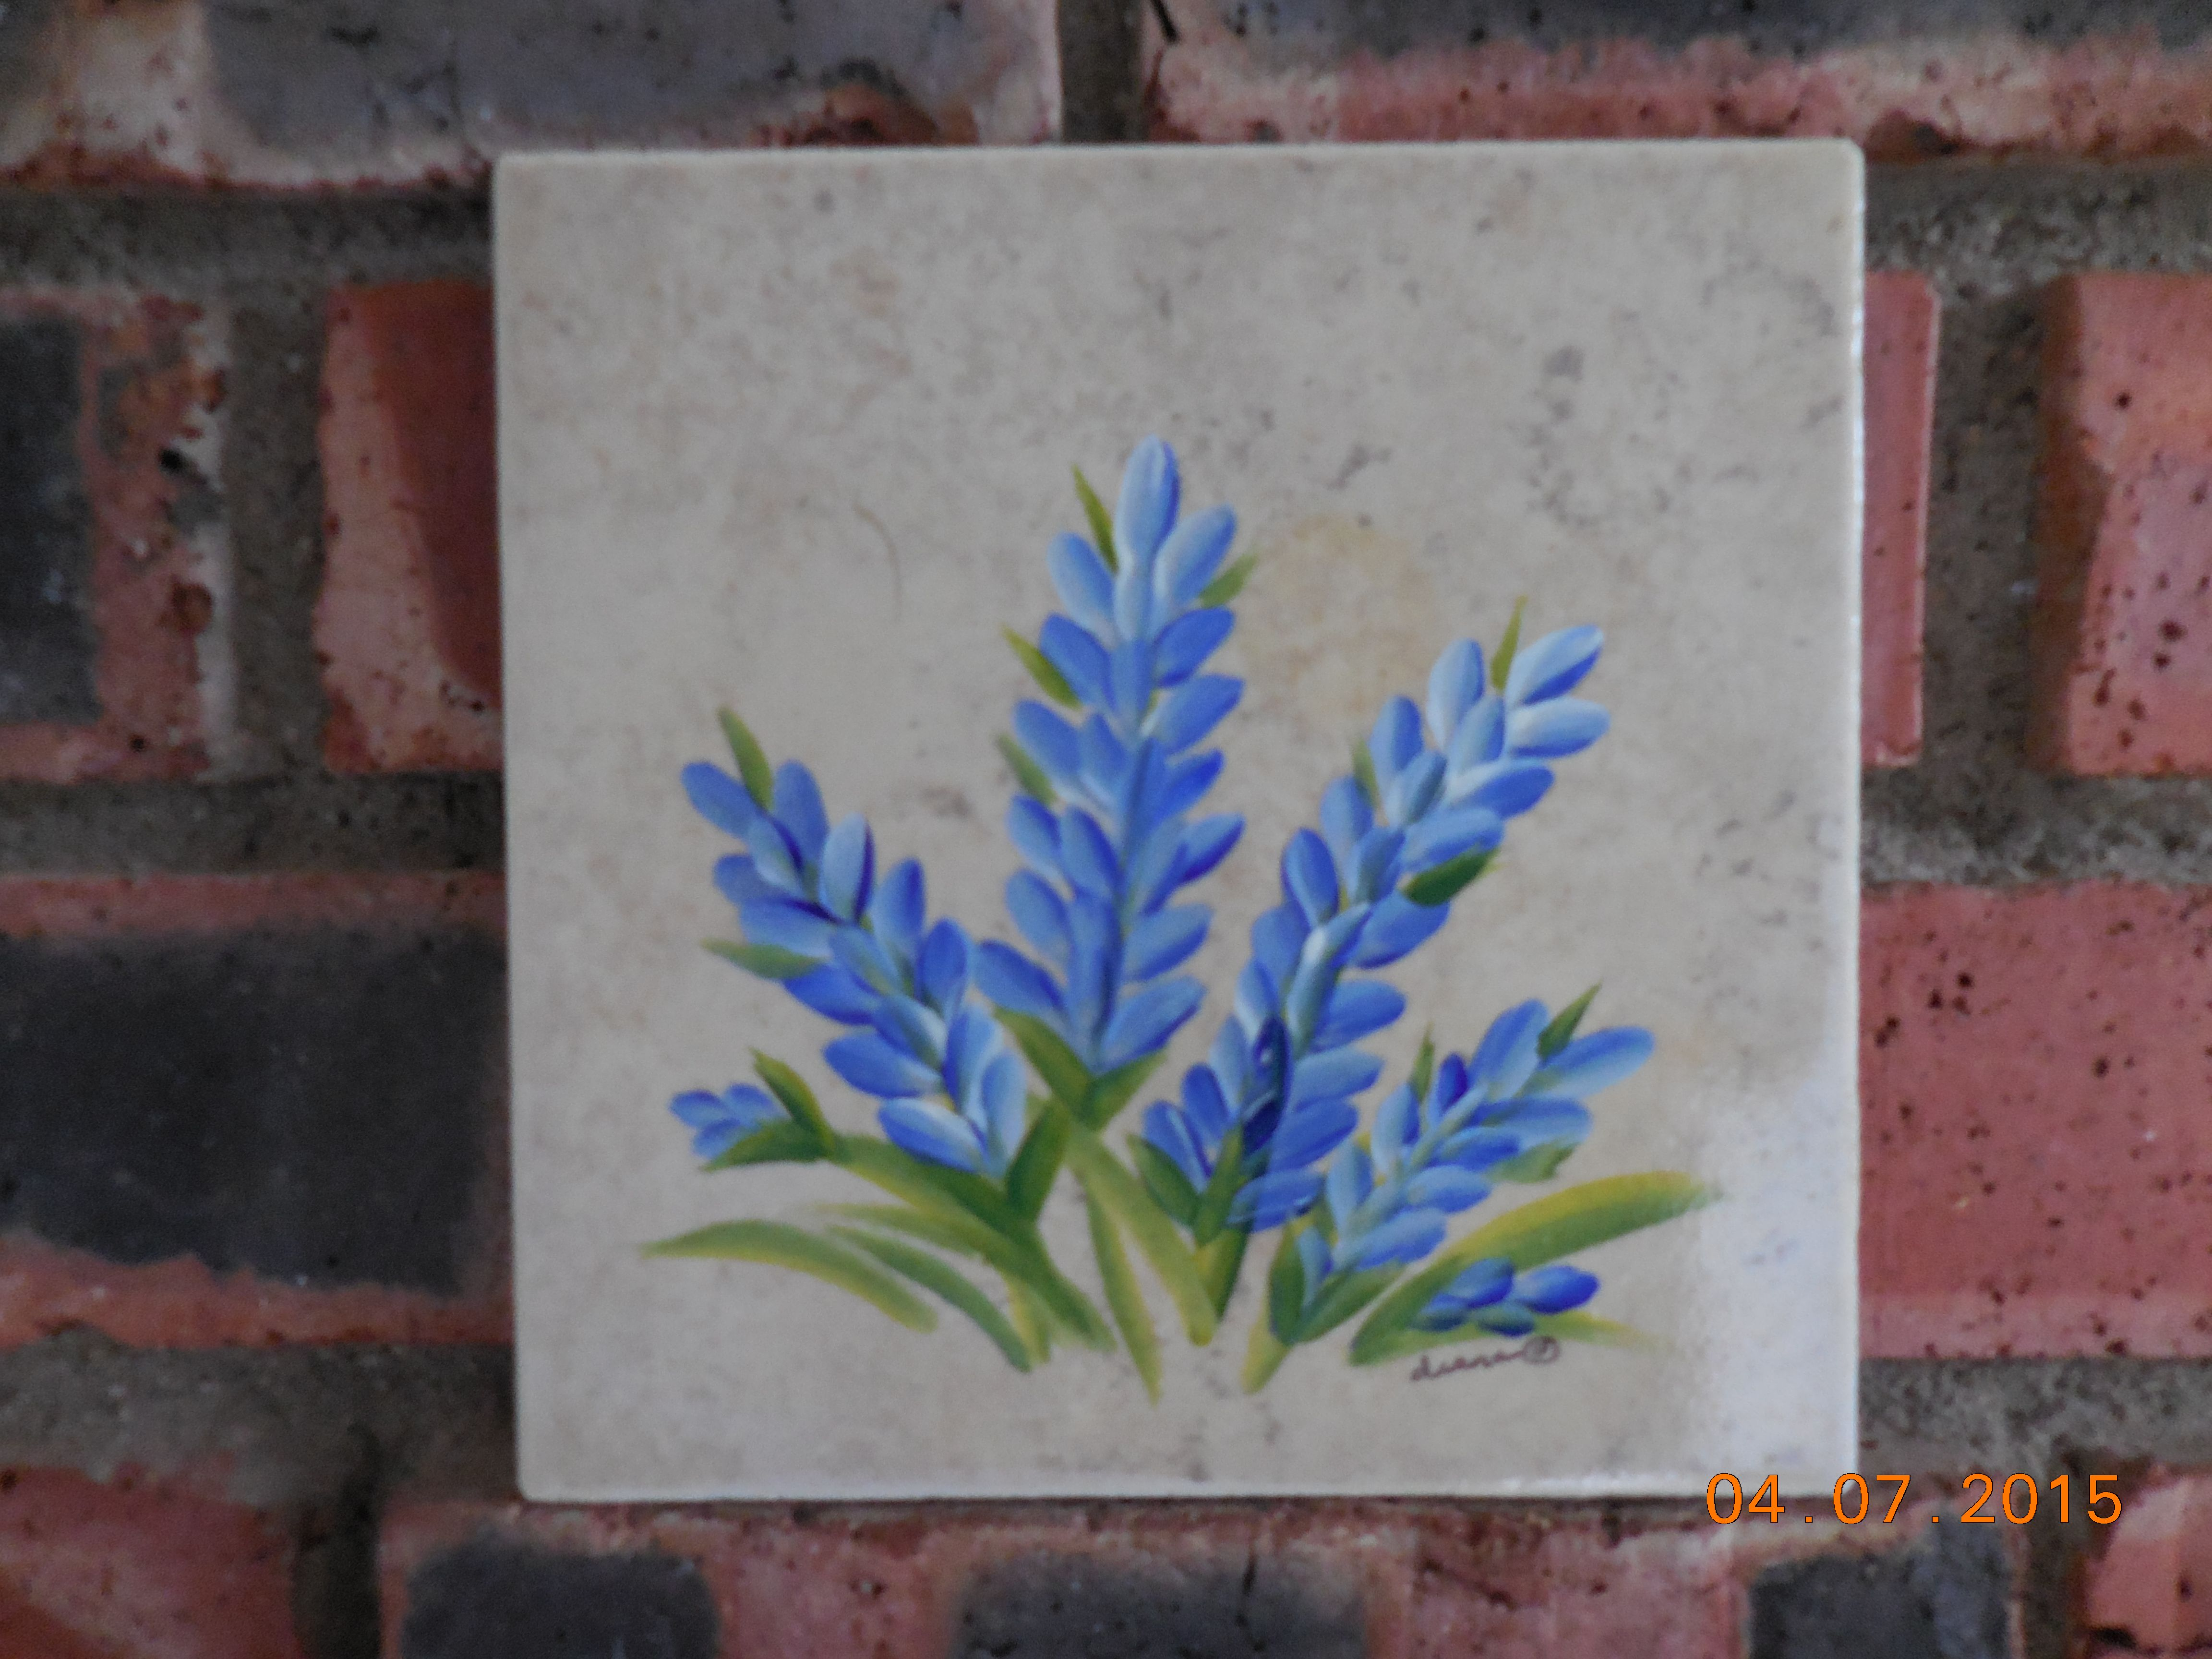 Bluebonnets on a ceramic tile 6x6 custom painted design to bluebonnets on a ceramic tile 6x6 custom painted design to incorporate into dailygadgetfo Choice Image